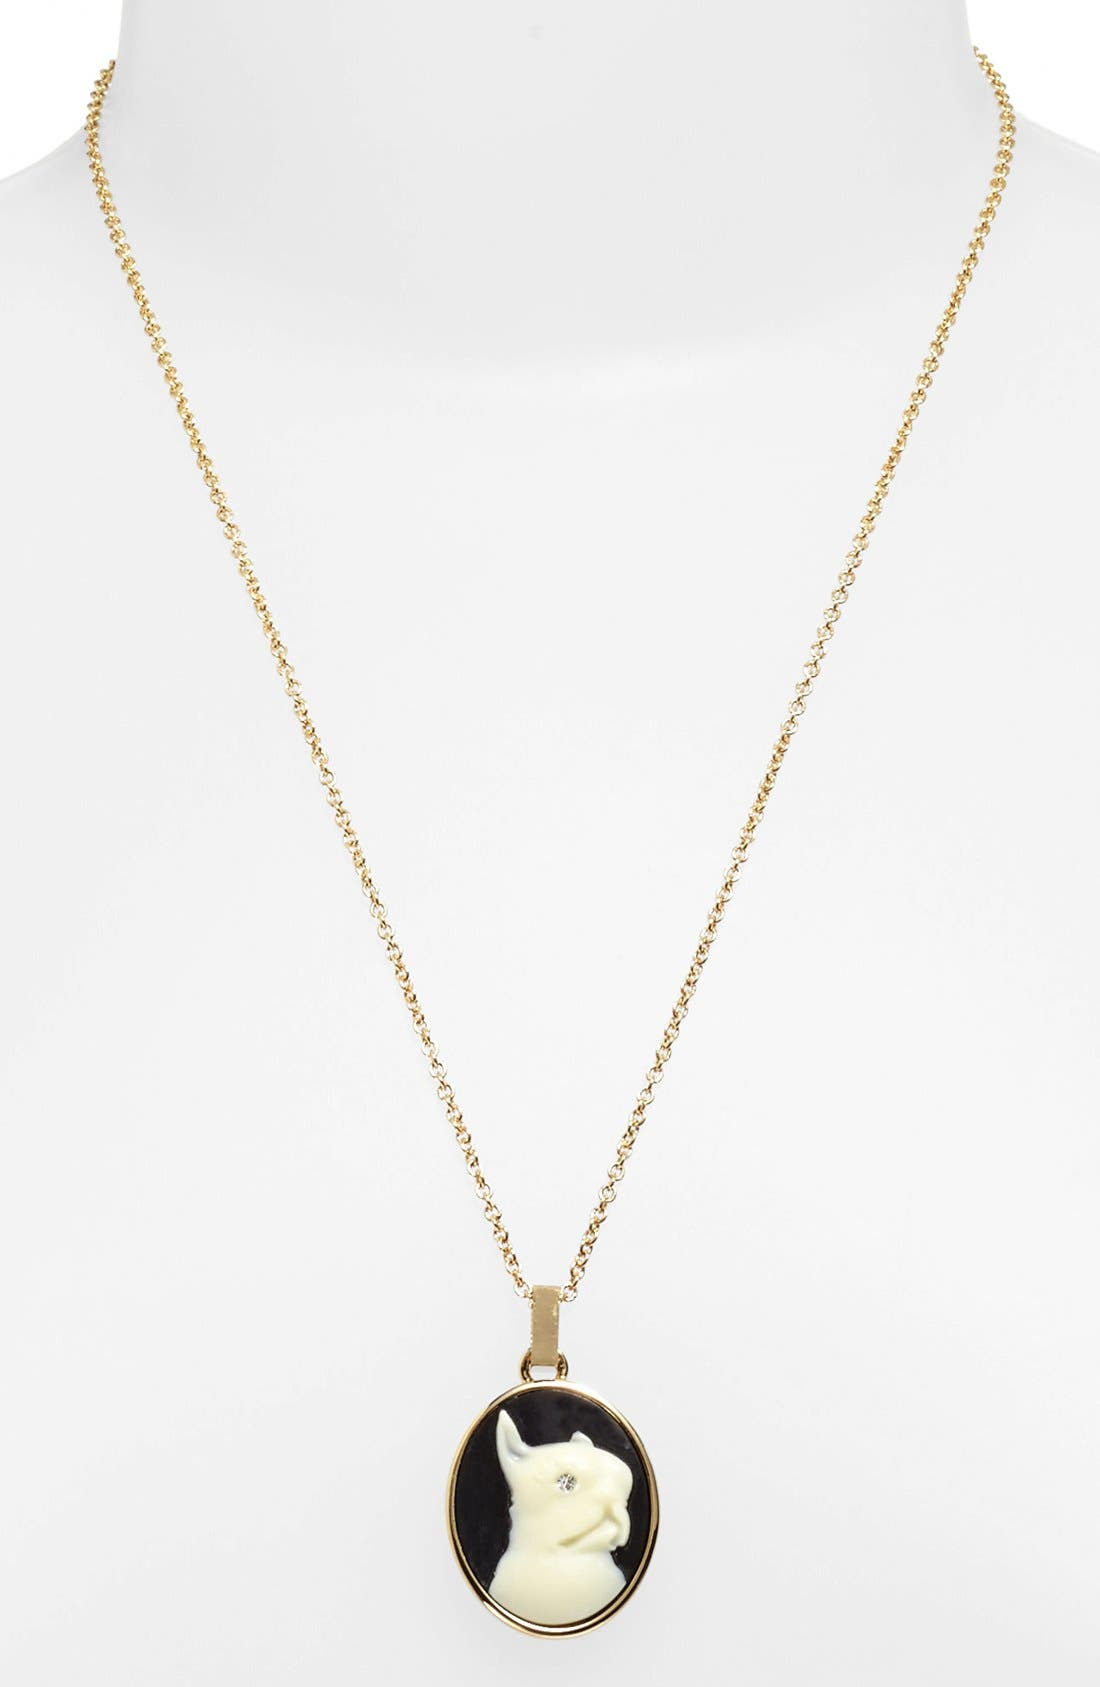 Main Image - MARC BY MARC JACOBS 'Olive' Dog Cameo Pendant Necklace